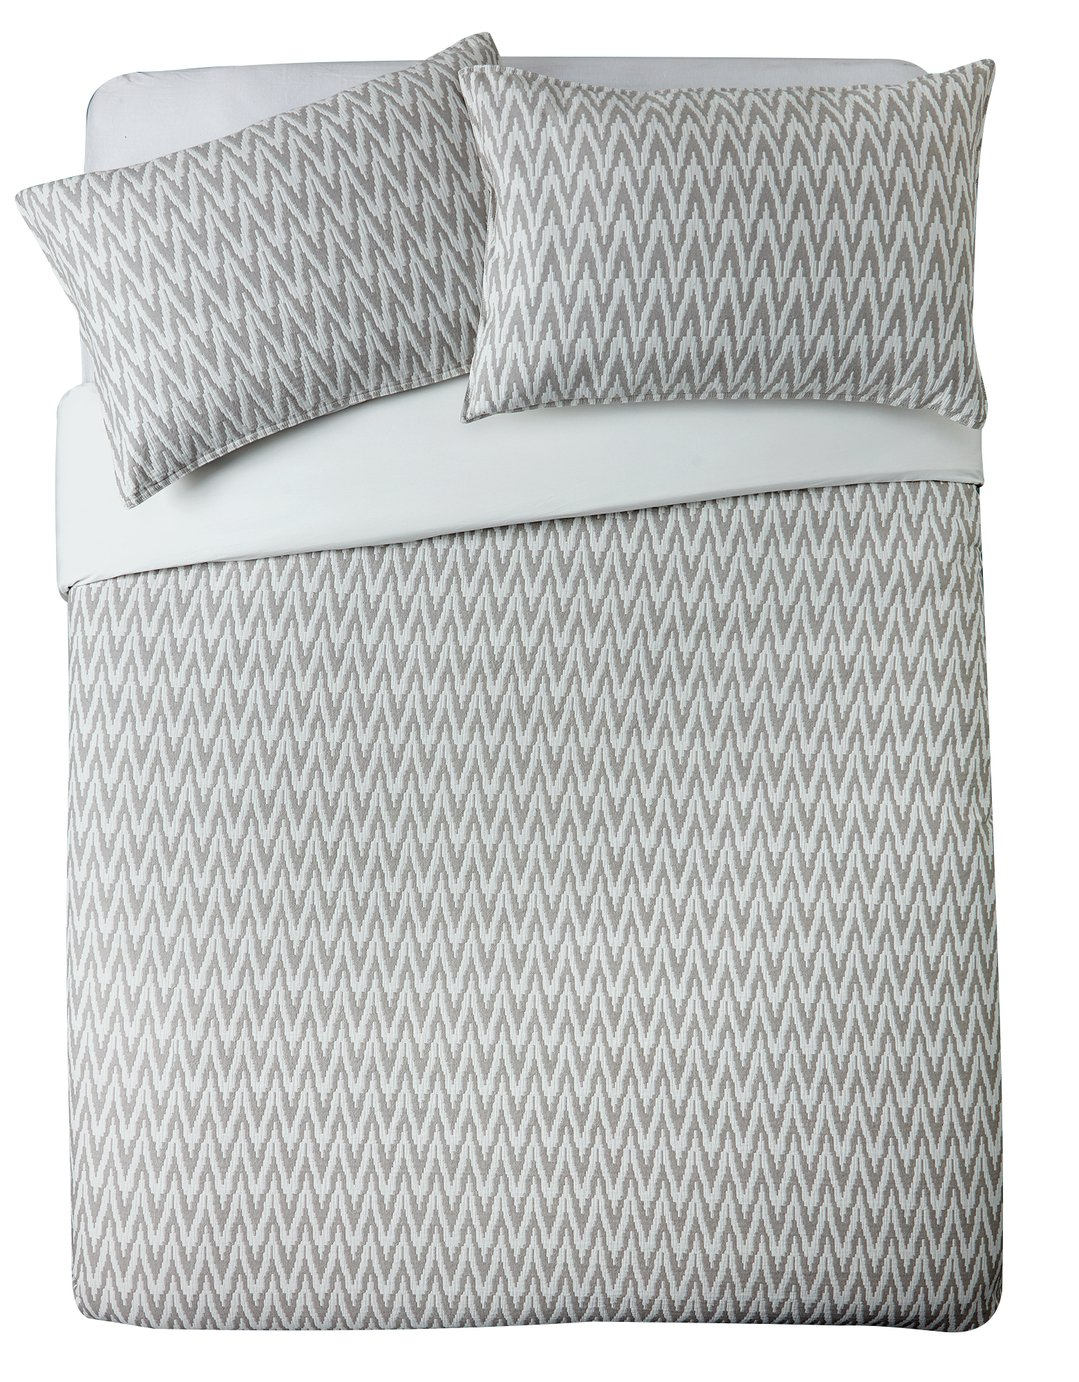 Sainsbury's Home Matalasse Bedding Set - Kingsize